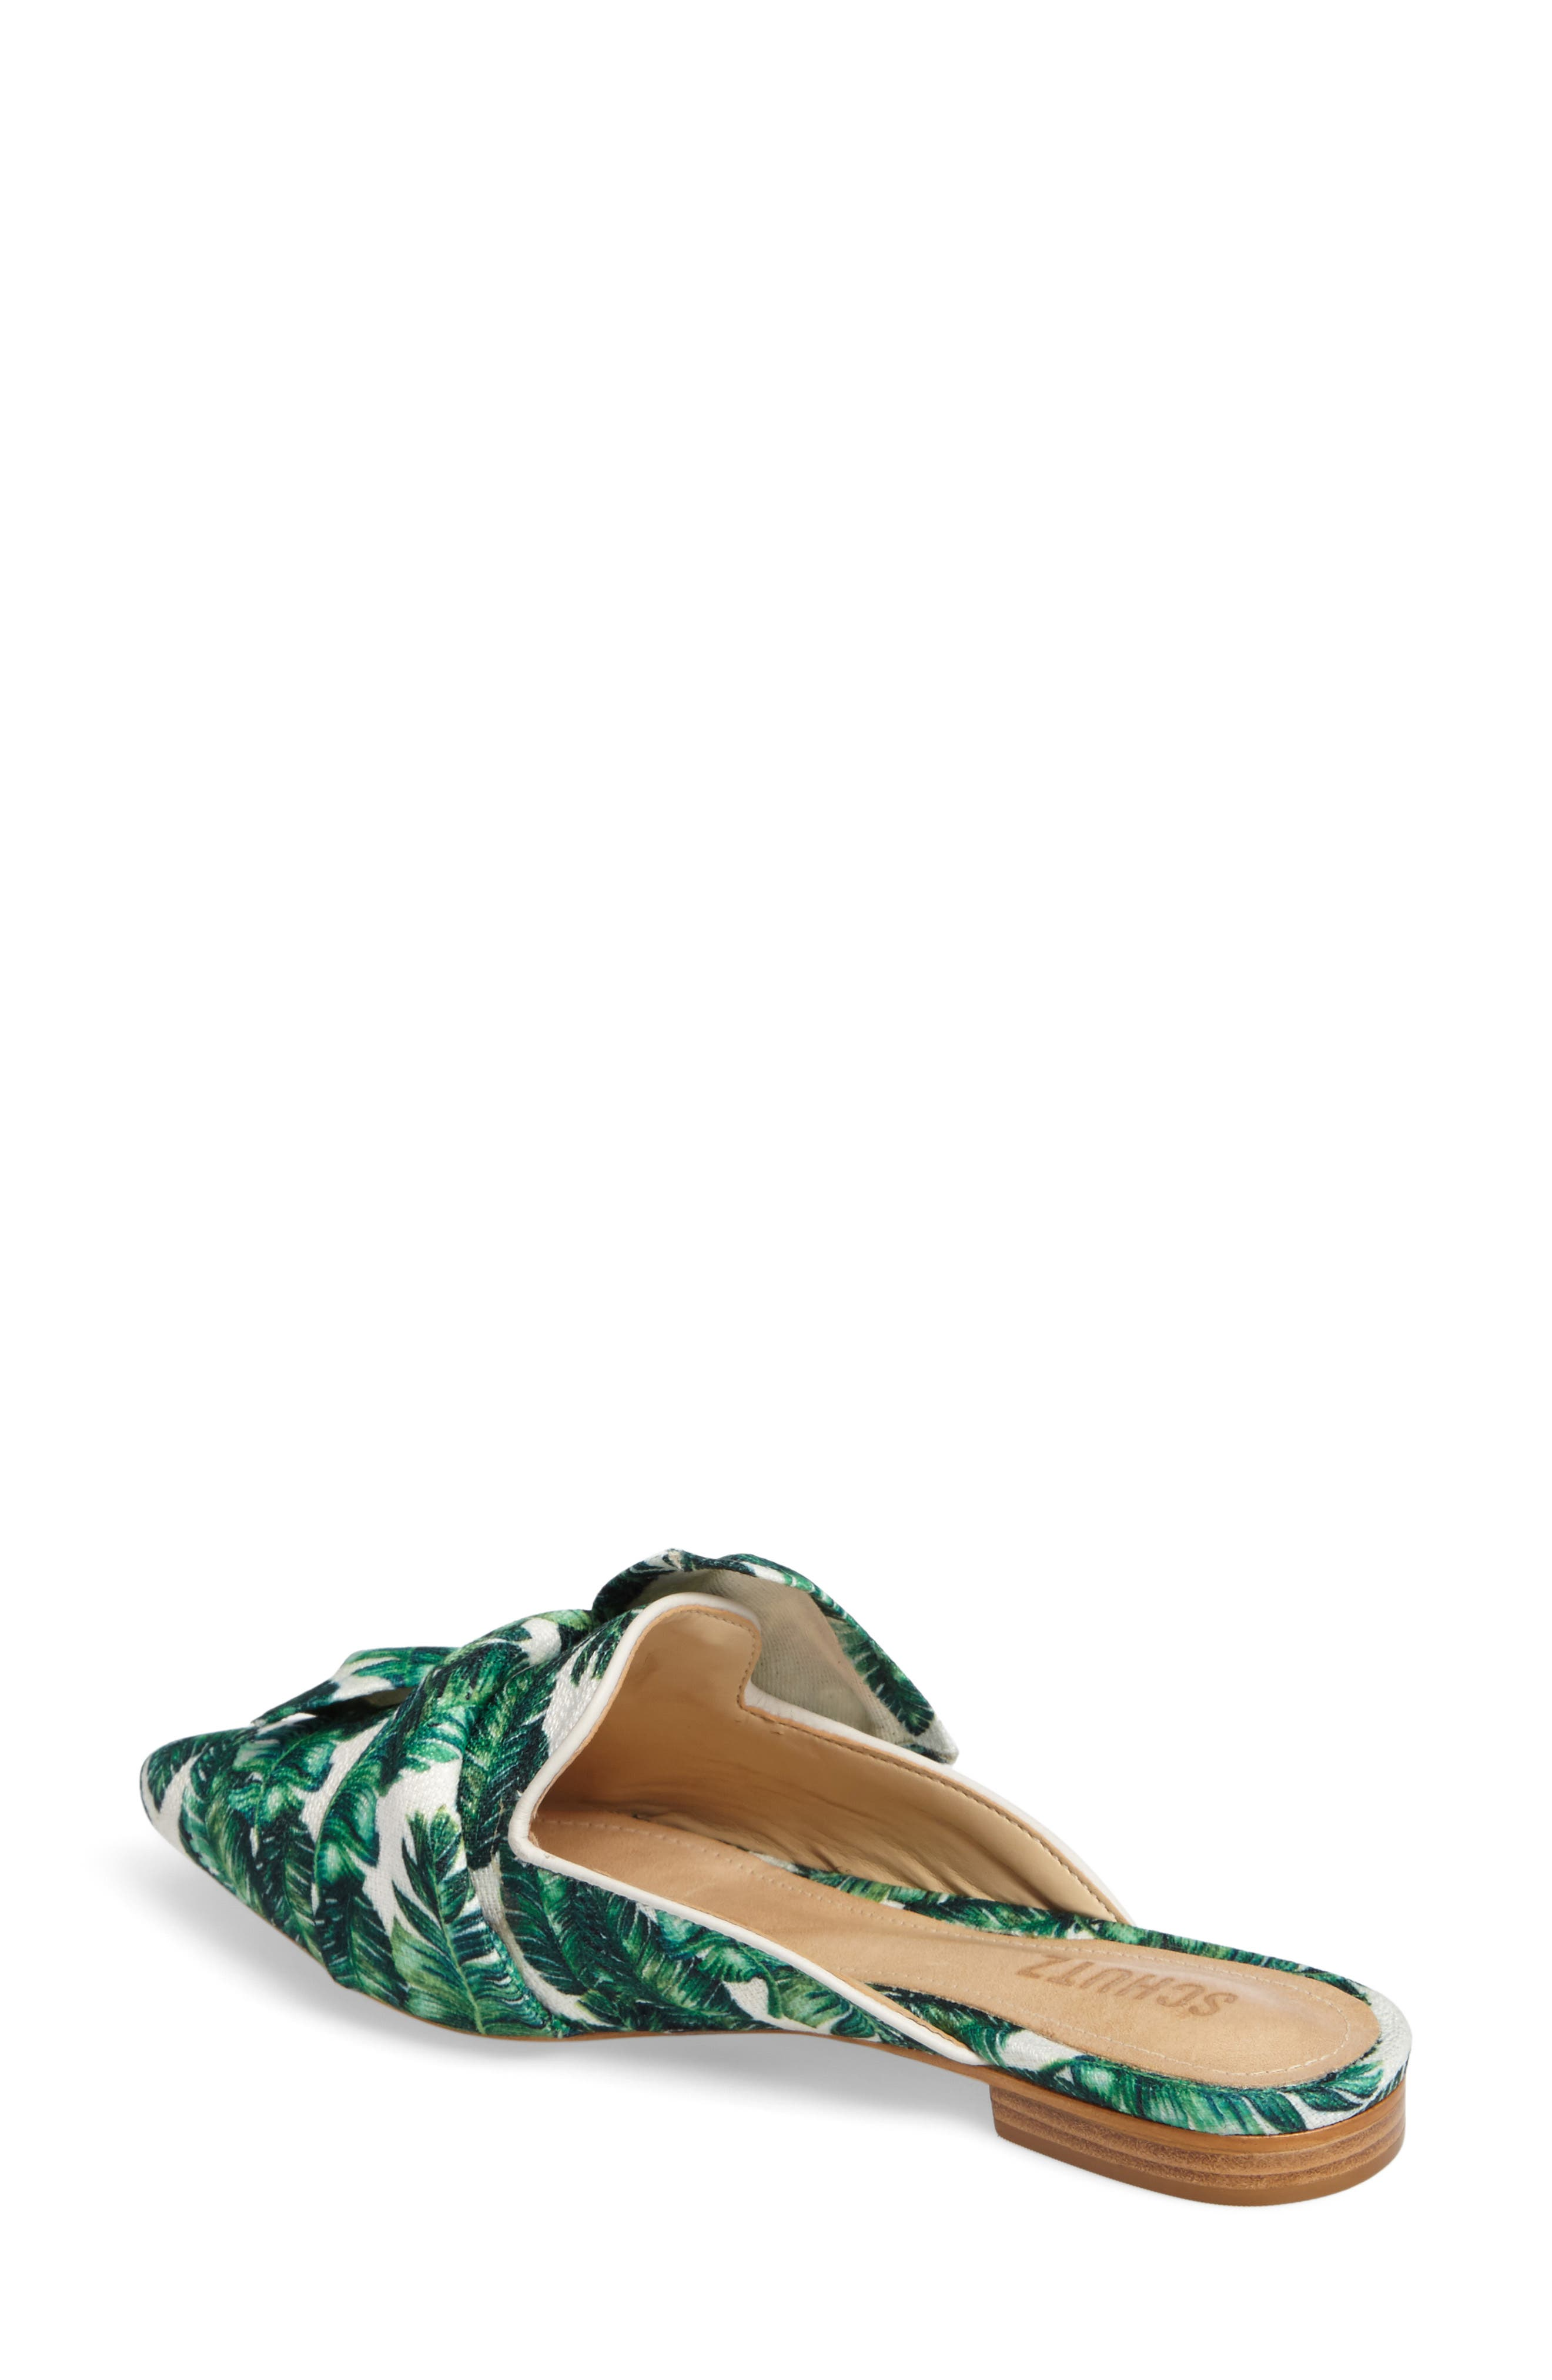 SCHUTZ,                             D'Ana Knotted Loafer Mule,                             Alternate thumbnail 2, color,                             100